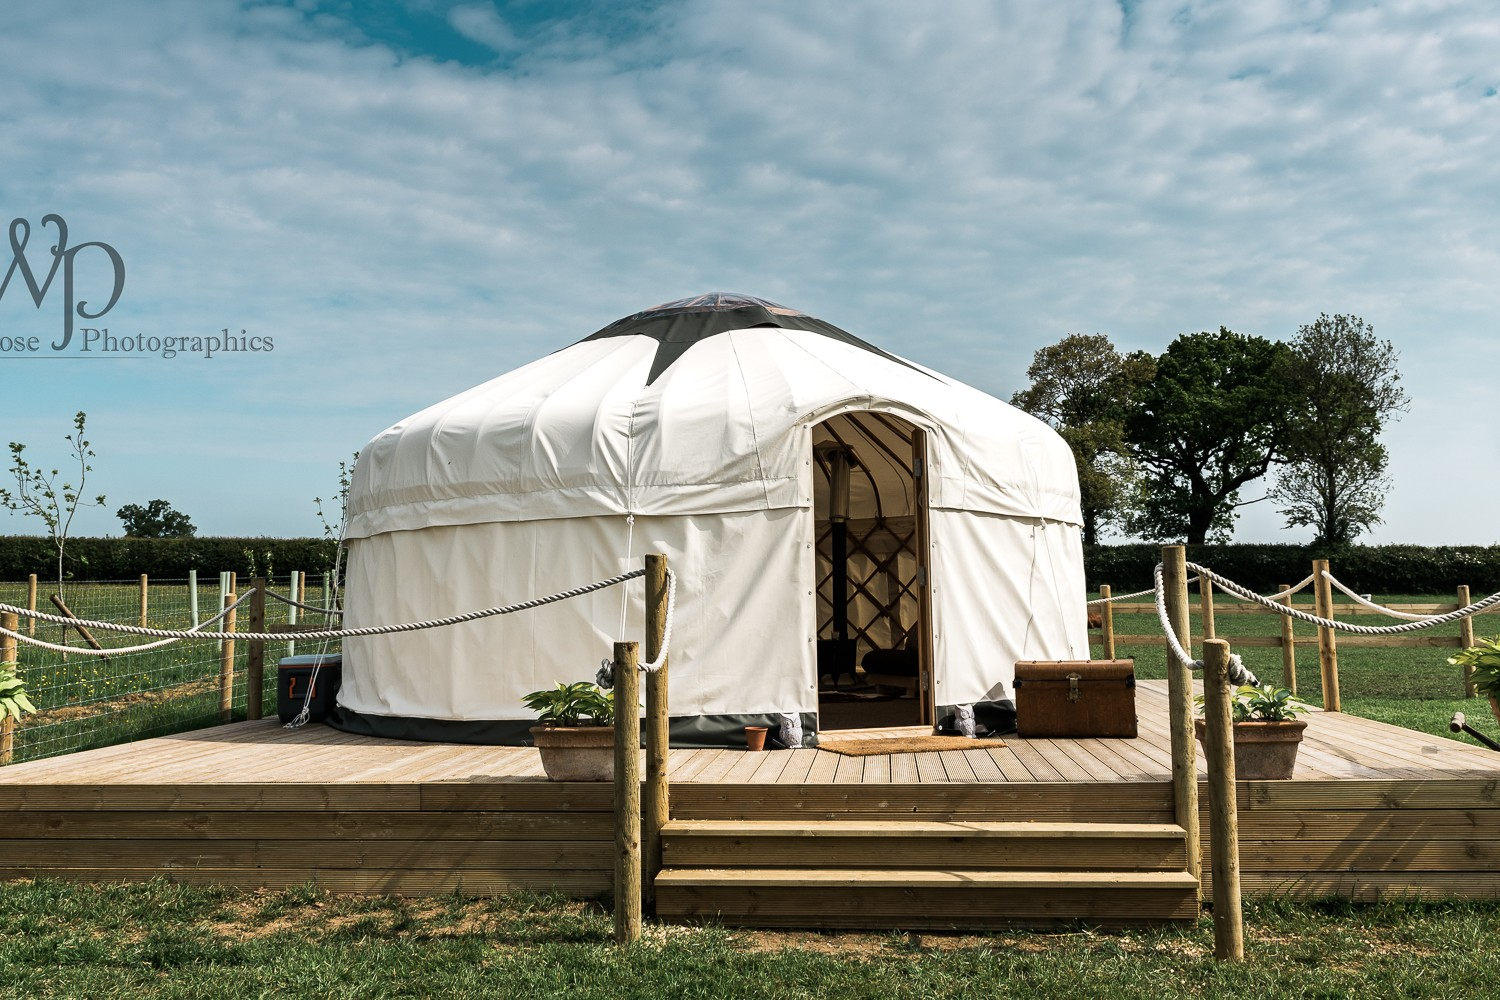 Brand photographer Glamping yurt outside with blue skies